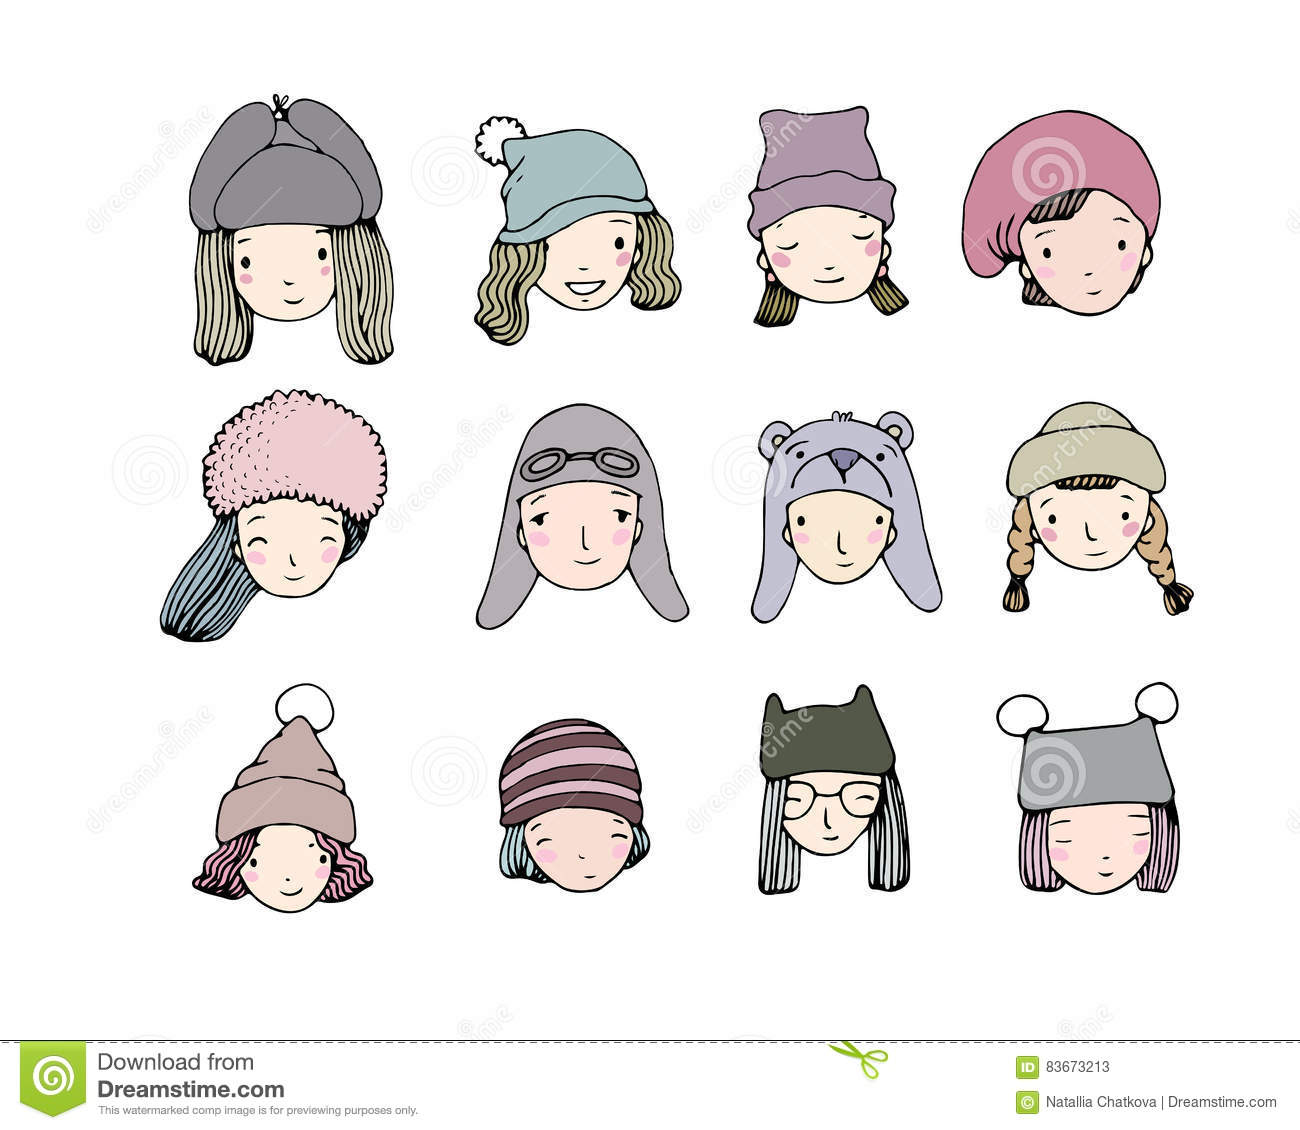 Different faces. People in winter hats. Hand drawing objects on white background.